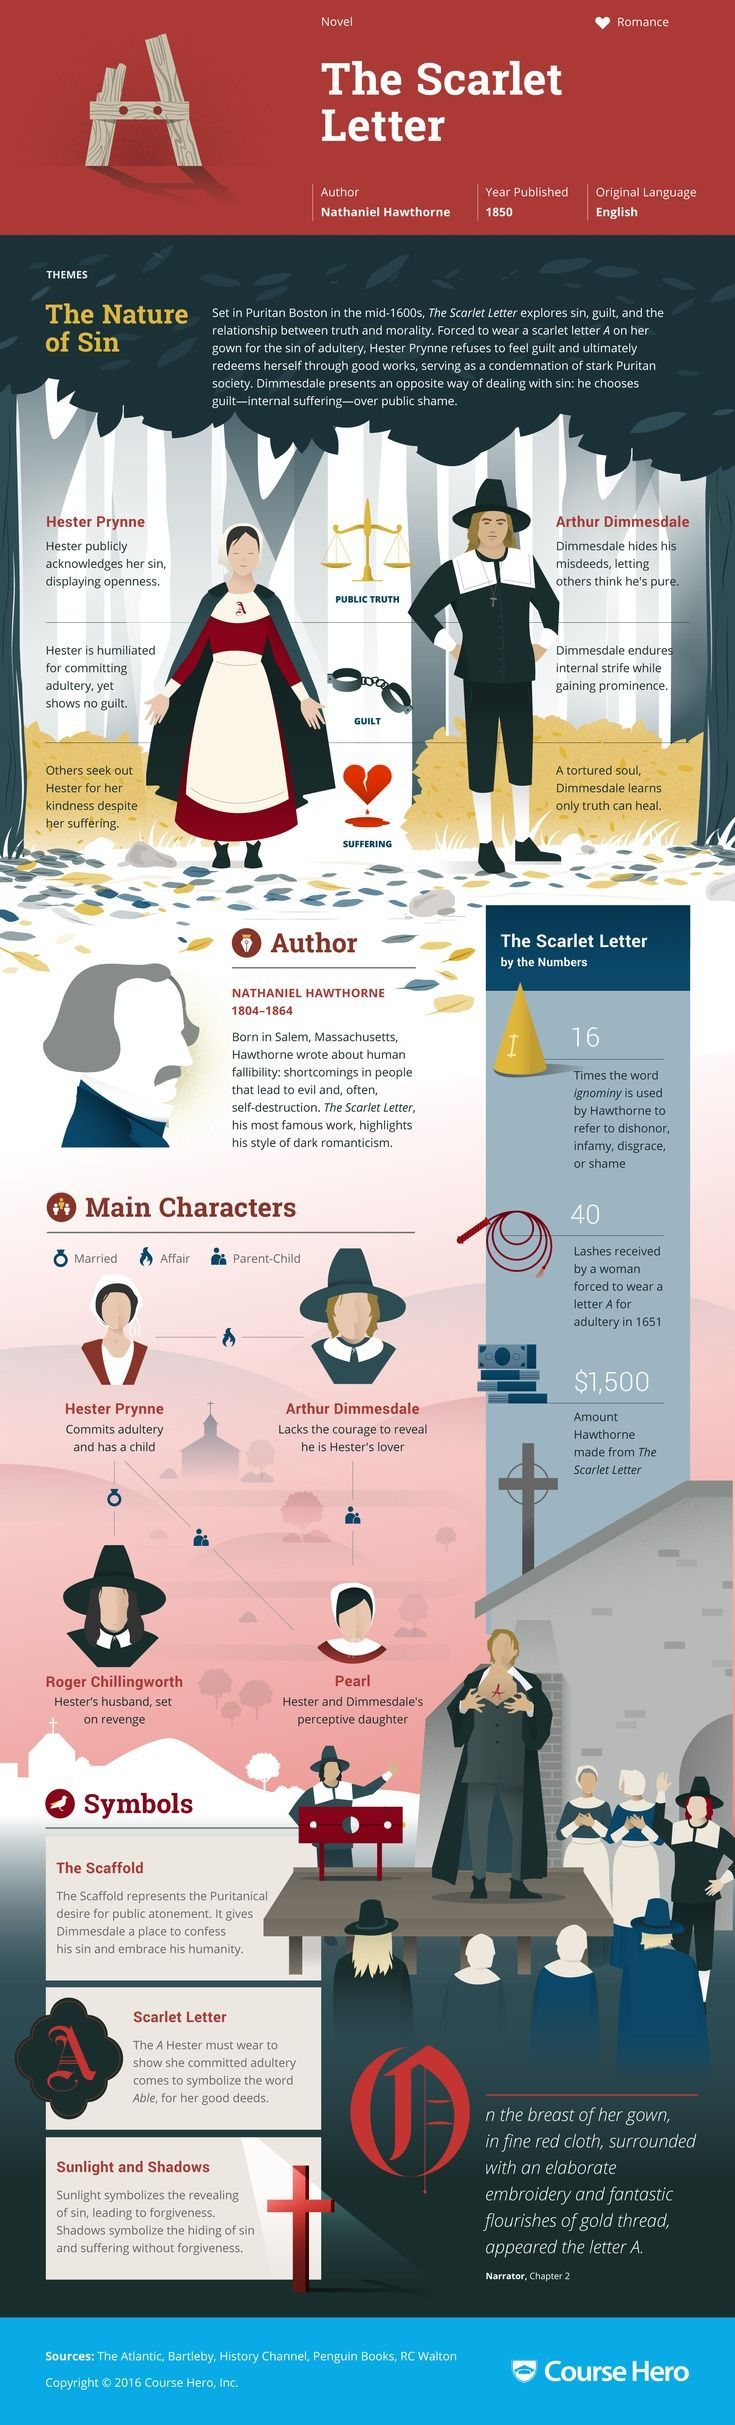 This CourseHero infographic on The Scarlet Letter